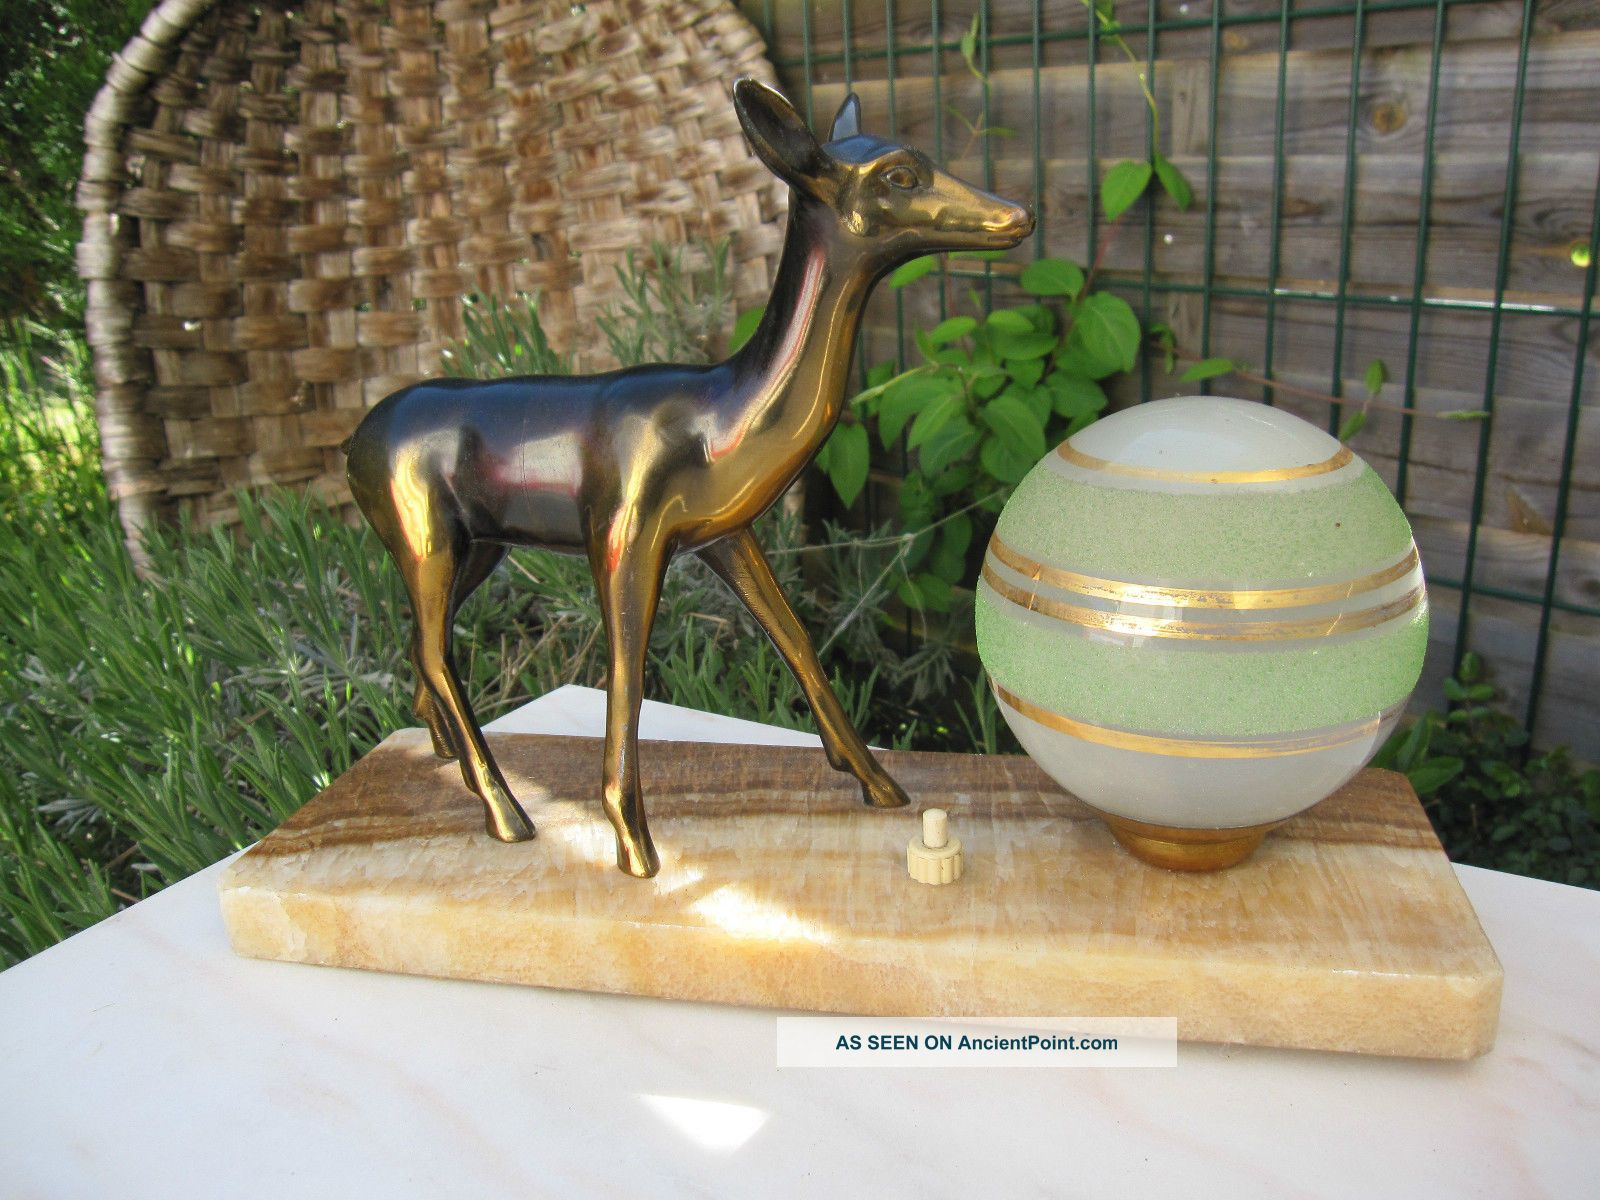 Vintage French Art Deco Lamp Roe Deer Sculpture Figurine Glass Marble Lighting 20th Century photo